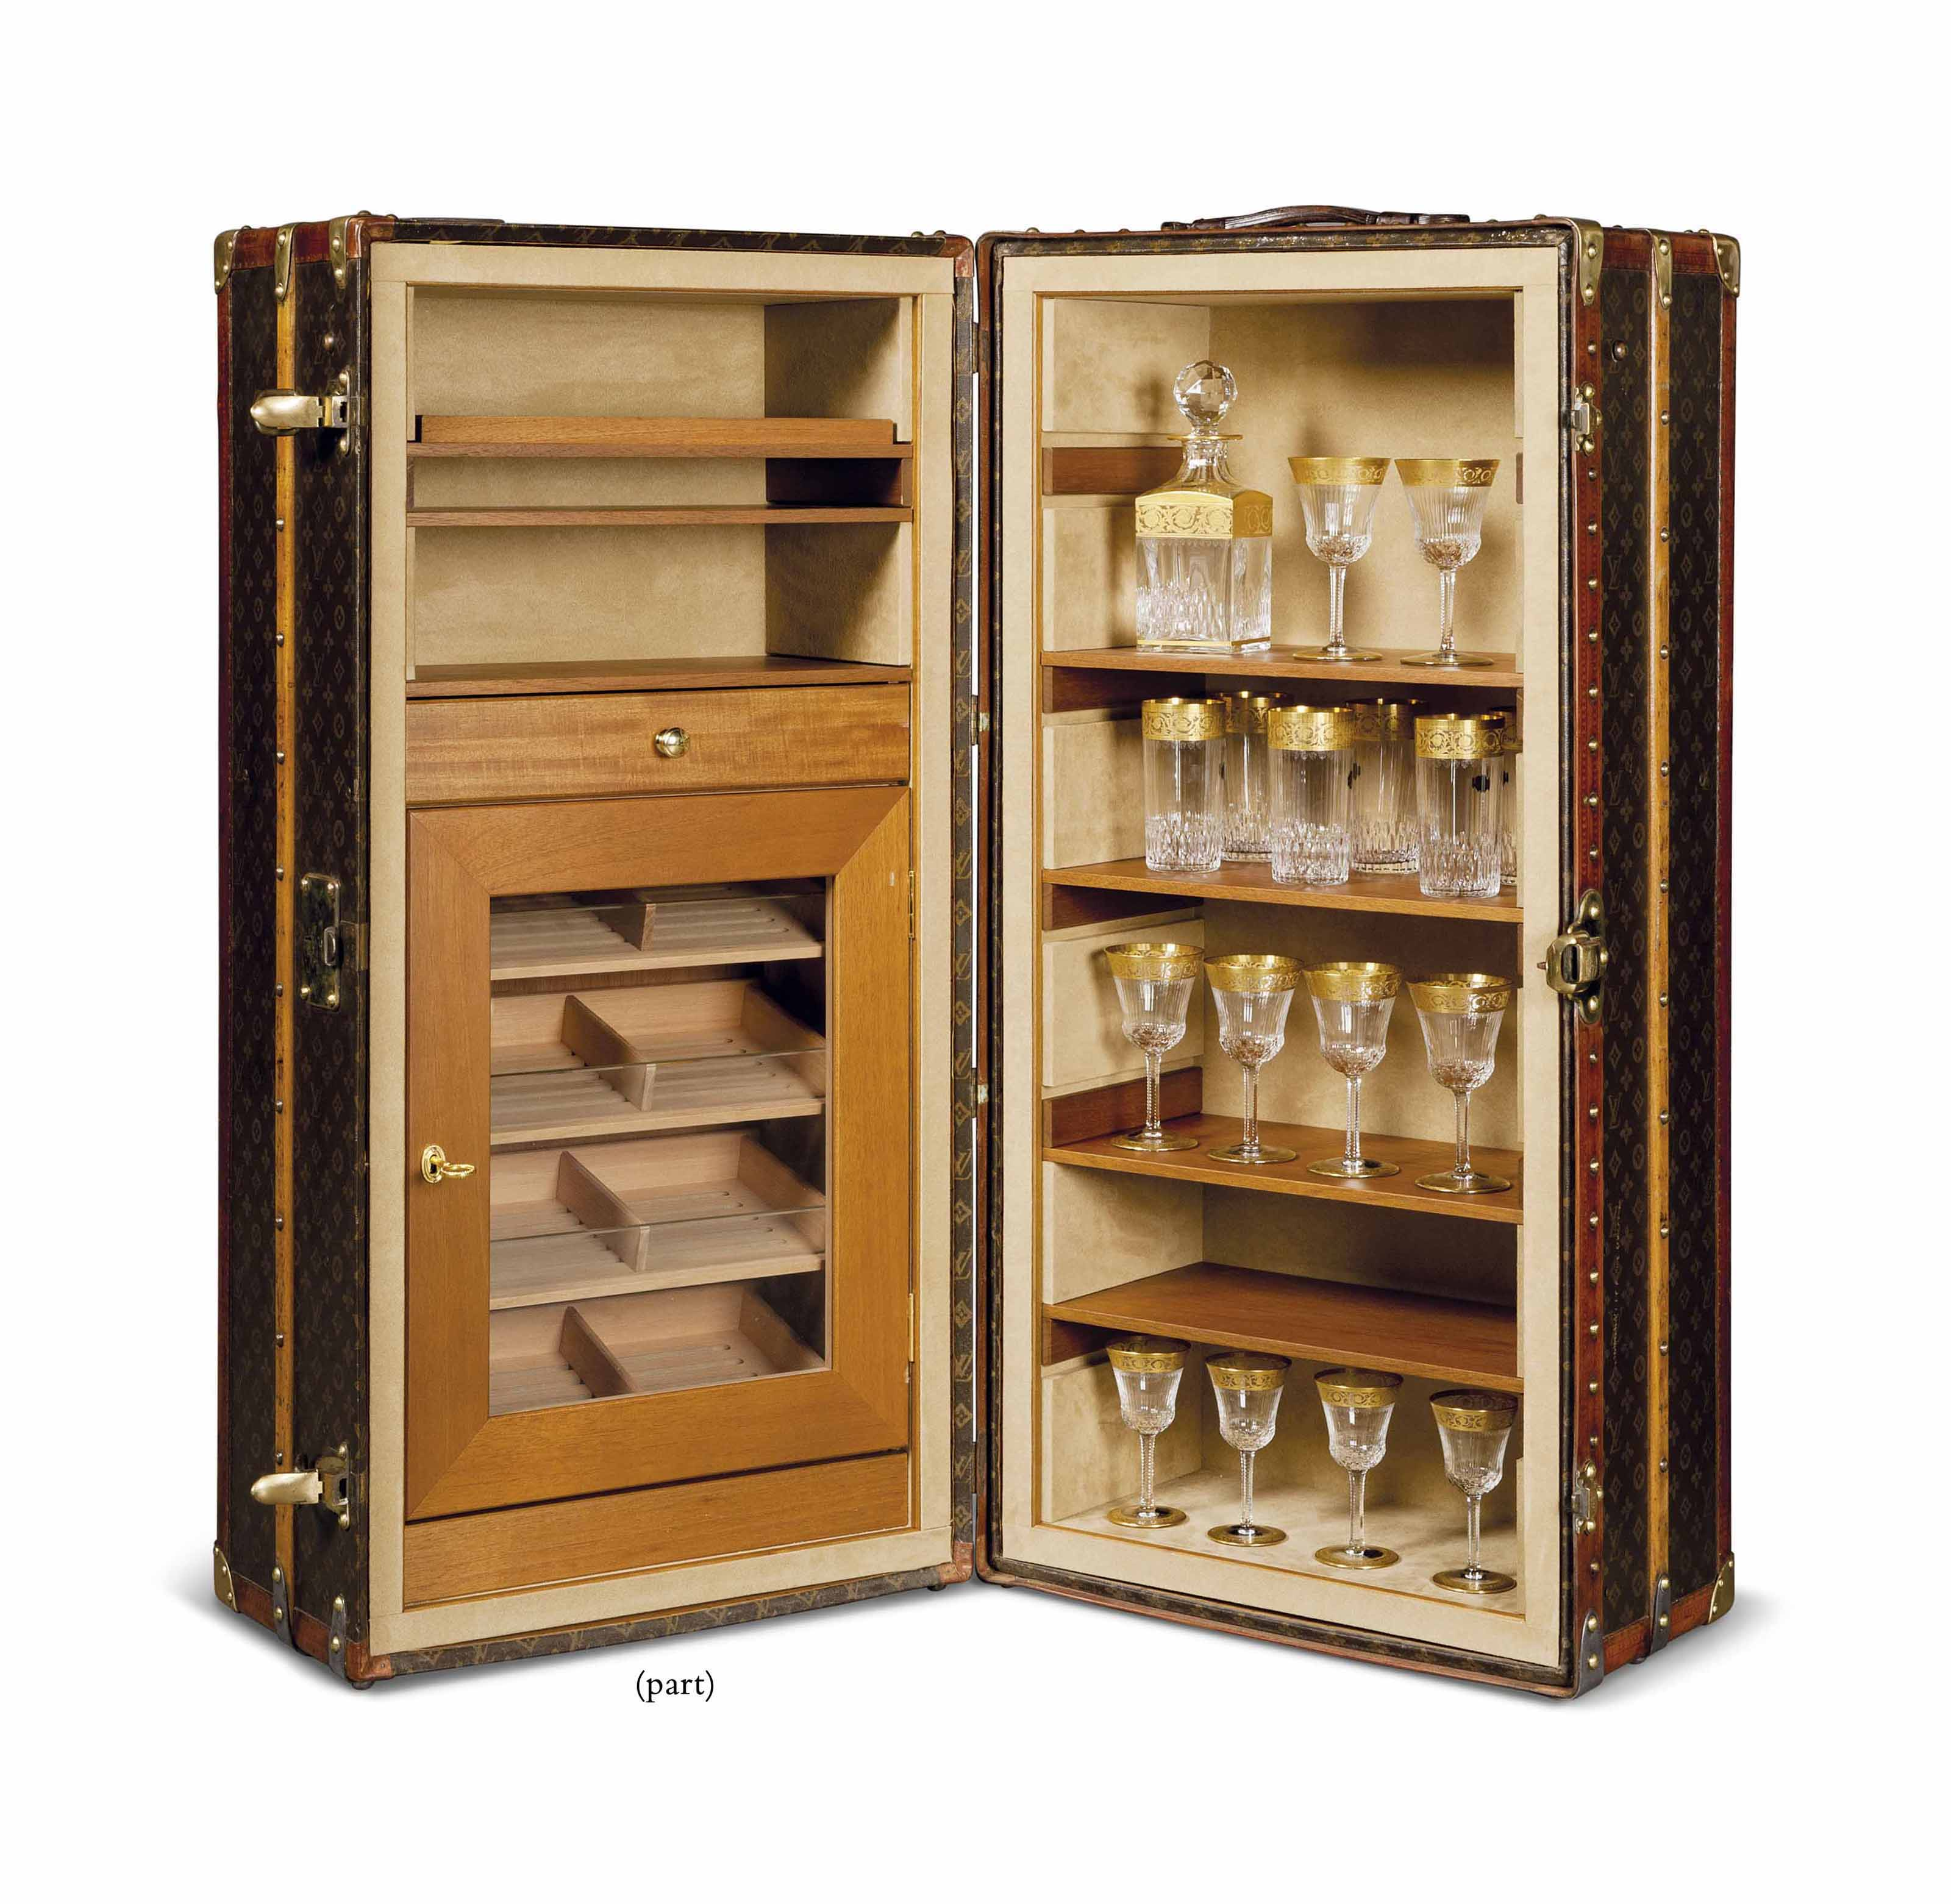 a louis vuitton wardrobe trunk modified as a cocktail bar and humidor   1920  30s  converted 2017